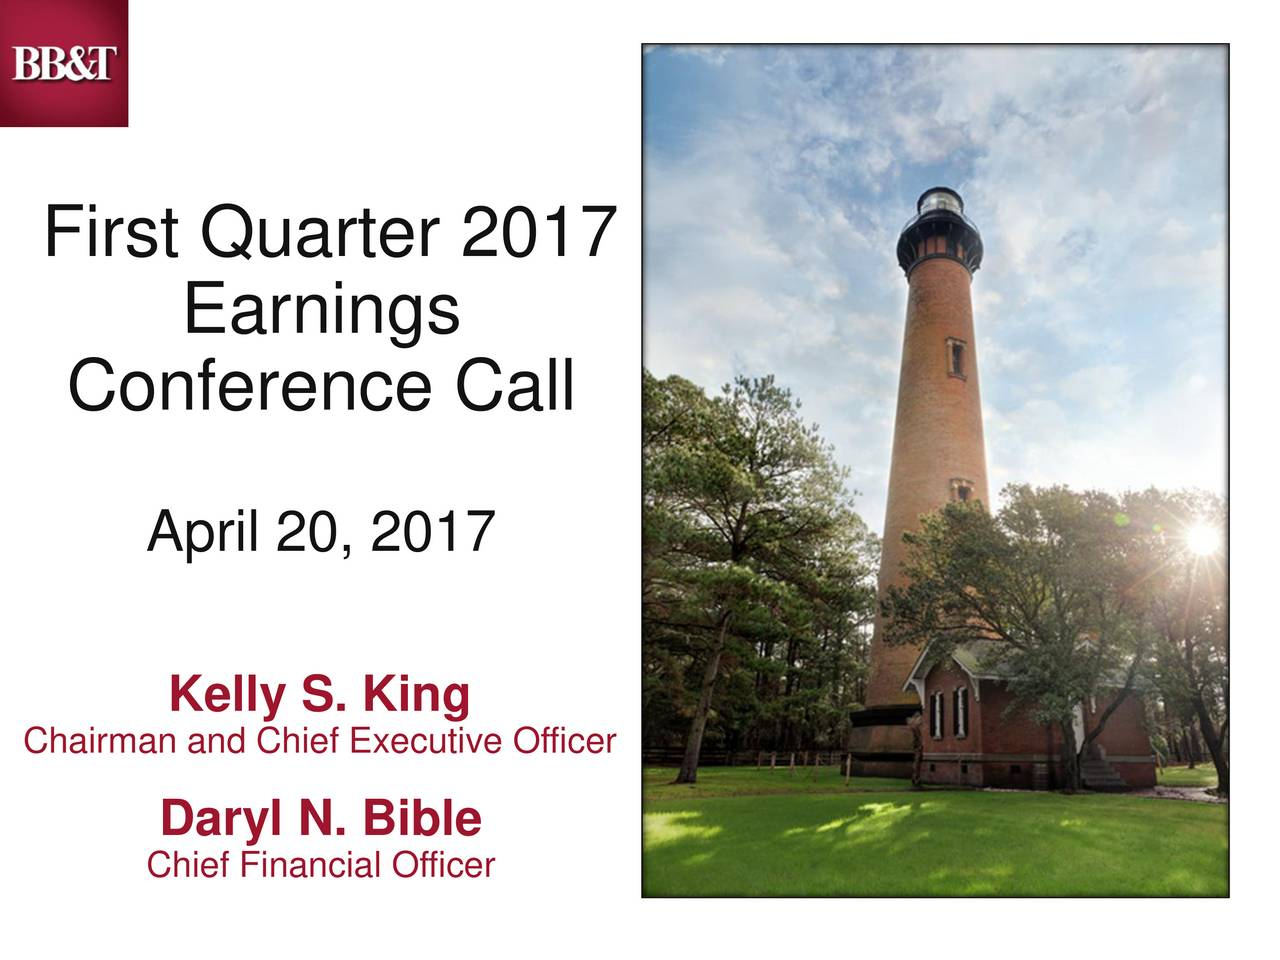 Earnings Conference Call April 20, 2017 Chairman and Chief Executive Officer Daryl N. Bible Chief Financial Officer